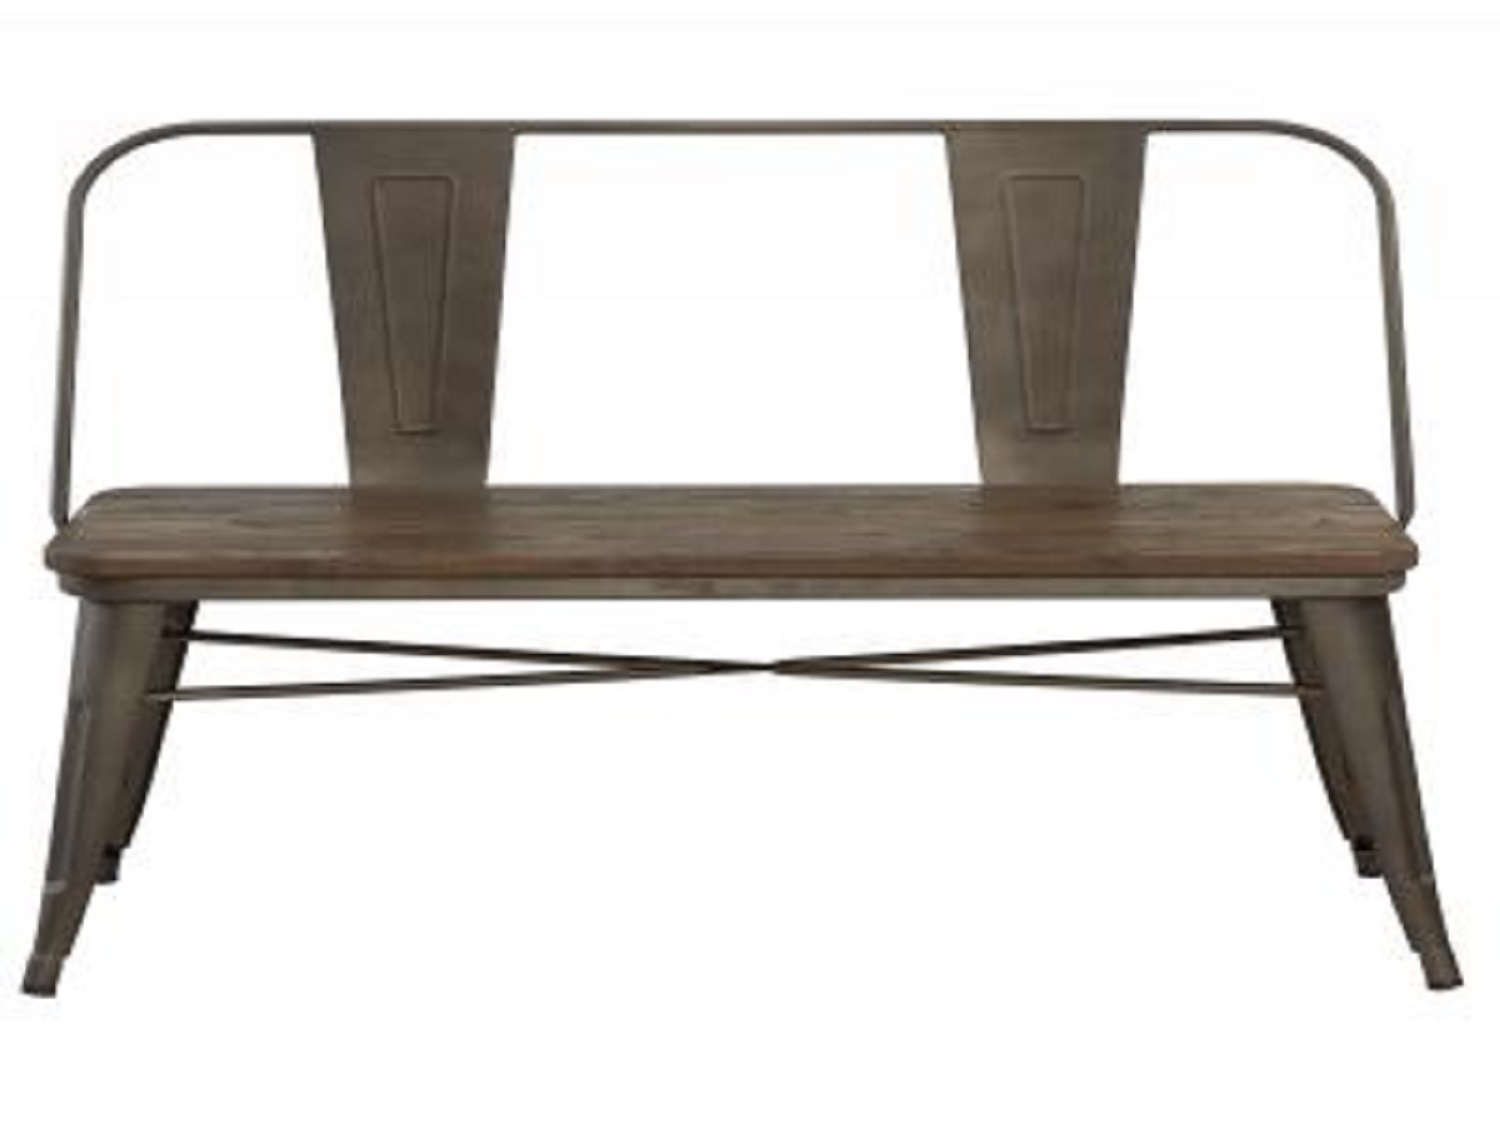 MODUS-DOUBLE BENCH-GUNMETAL, 841173021146, Benches, MODUS-DOUBLE BENCH-GUNMETAL from Dropship by Midha Furniture serving Brampton, Mississauga, Etobicoke, Toronto, Scraborough, Caledon, Cambridge, Oakville, Markham, Ajax, Pickering, Oshawa, Richmondhill, Kitchener, Hamilton, Cambridge, Waterloo and GTA area